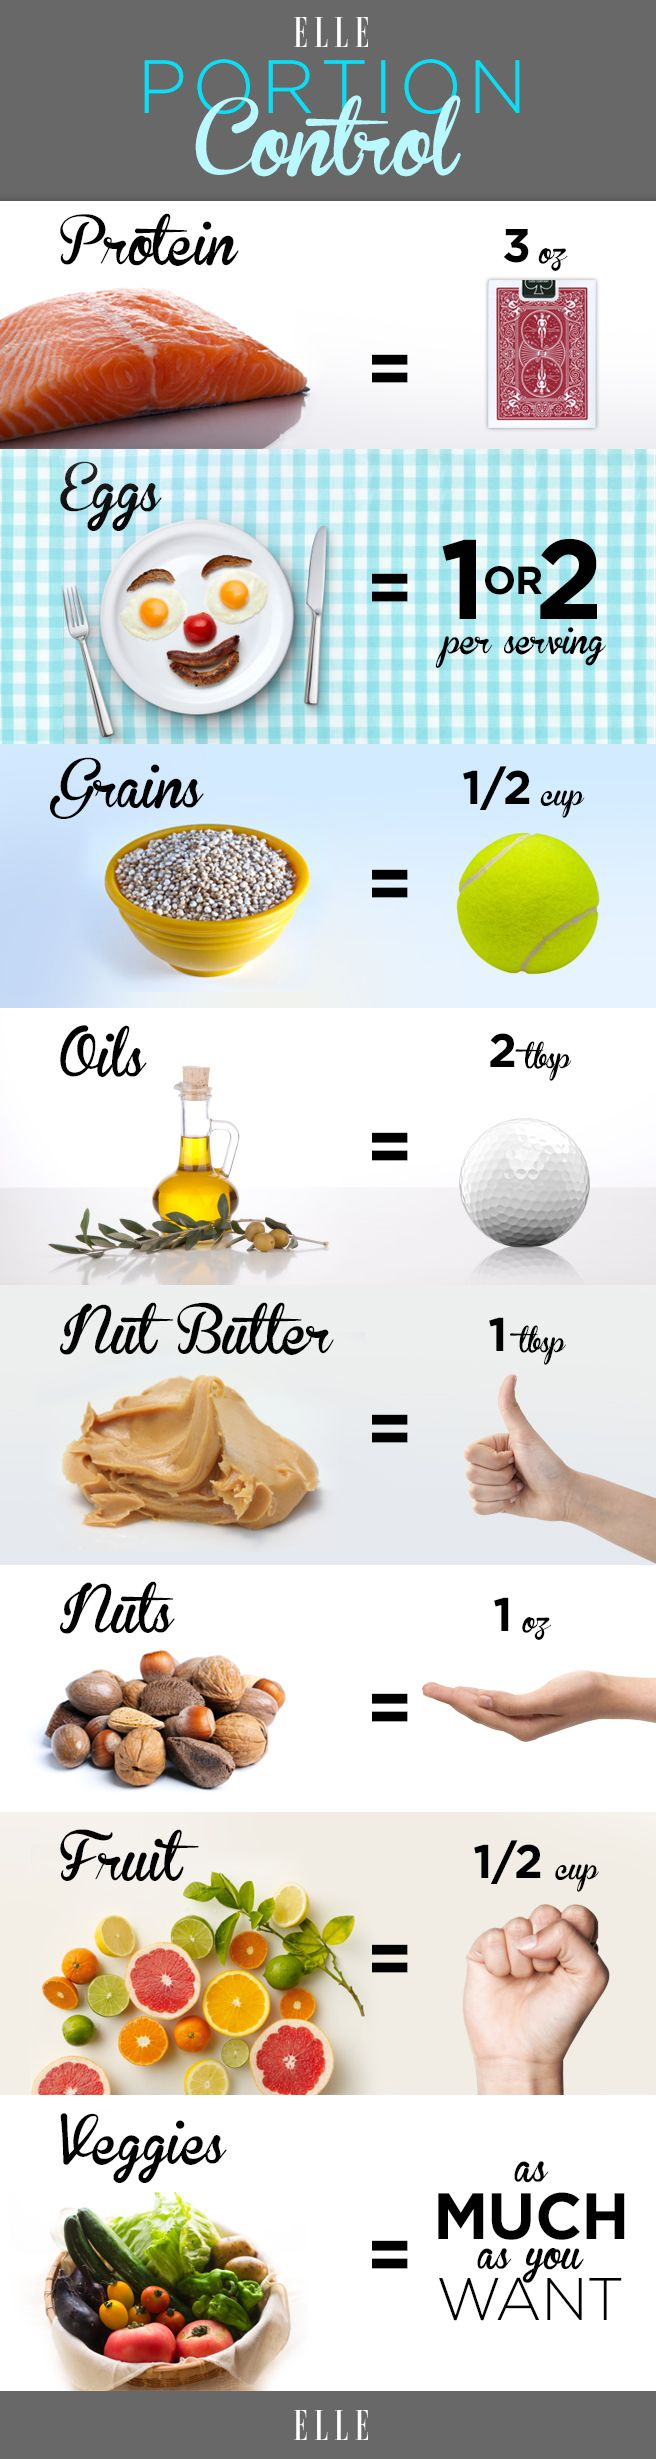 A Visual Guide to Portion Control - What is a Serving Size - ELLE